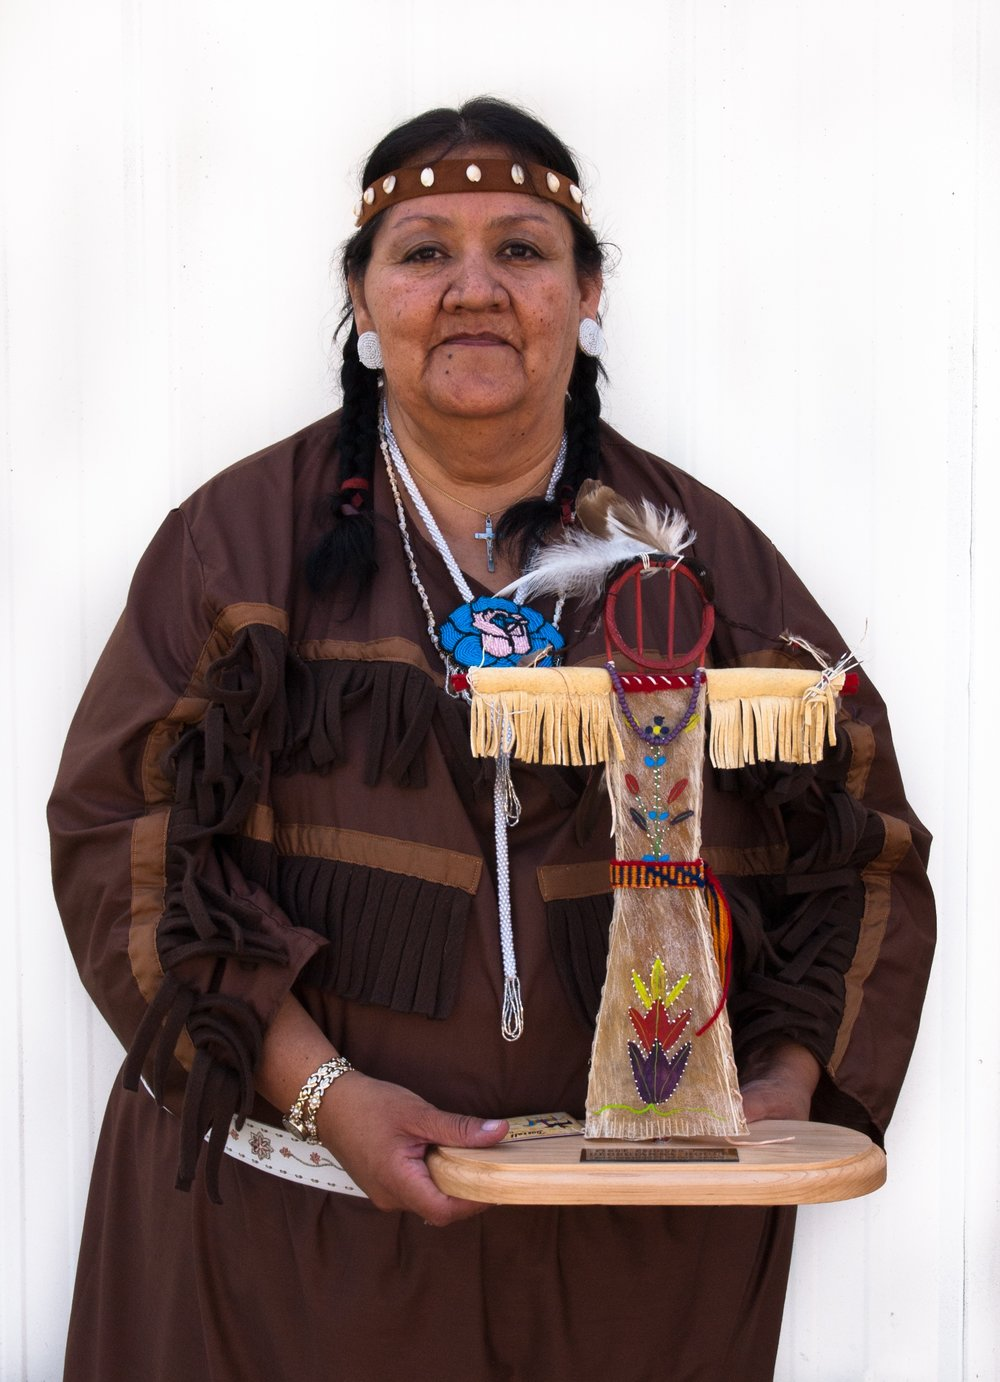 Image by Ronnie Farley